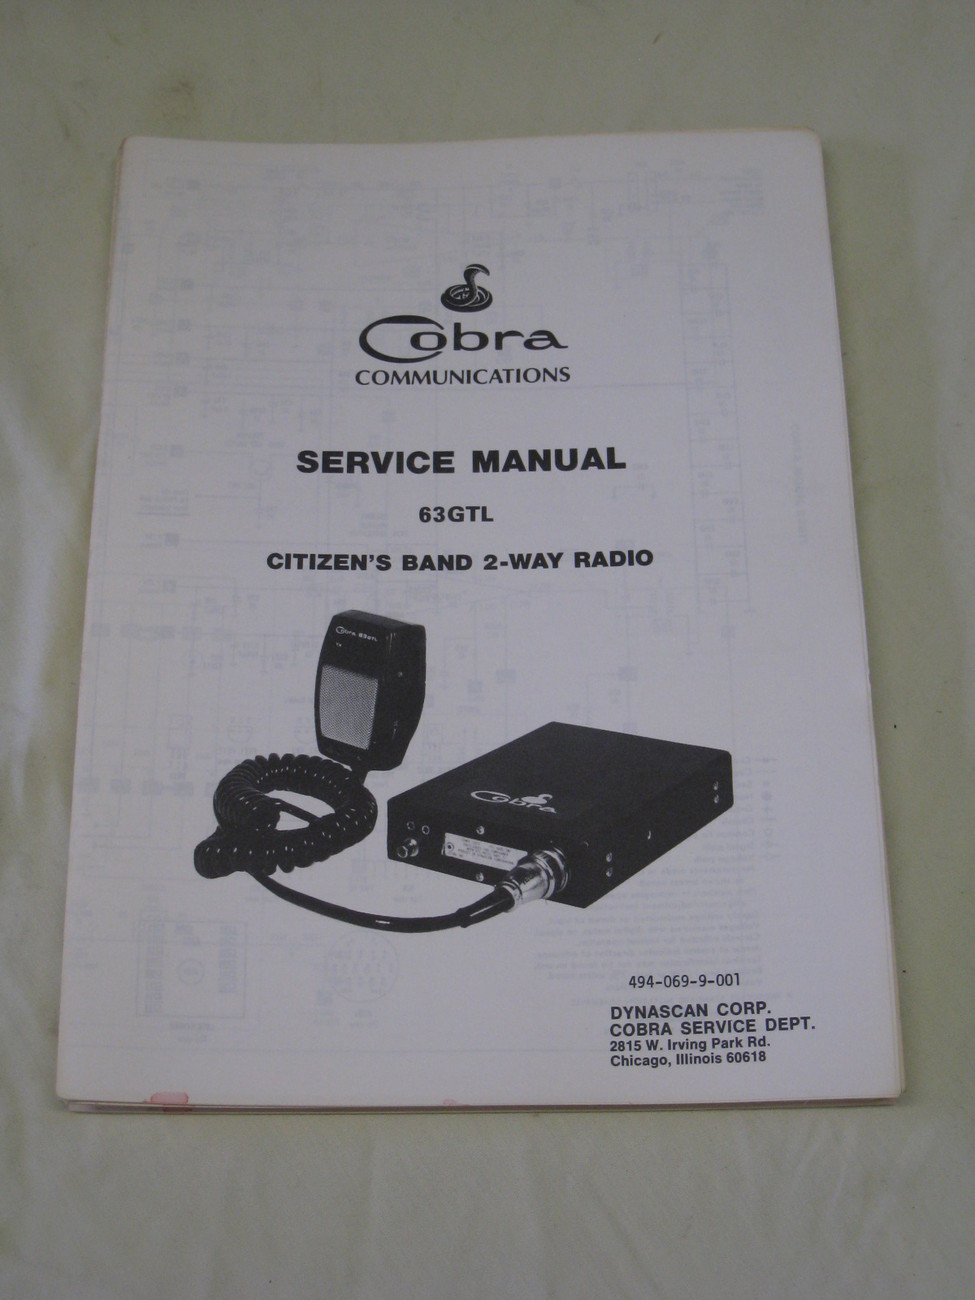 Primary image for Cobra Communications Service Manual for a Cobra 63 GTL